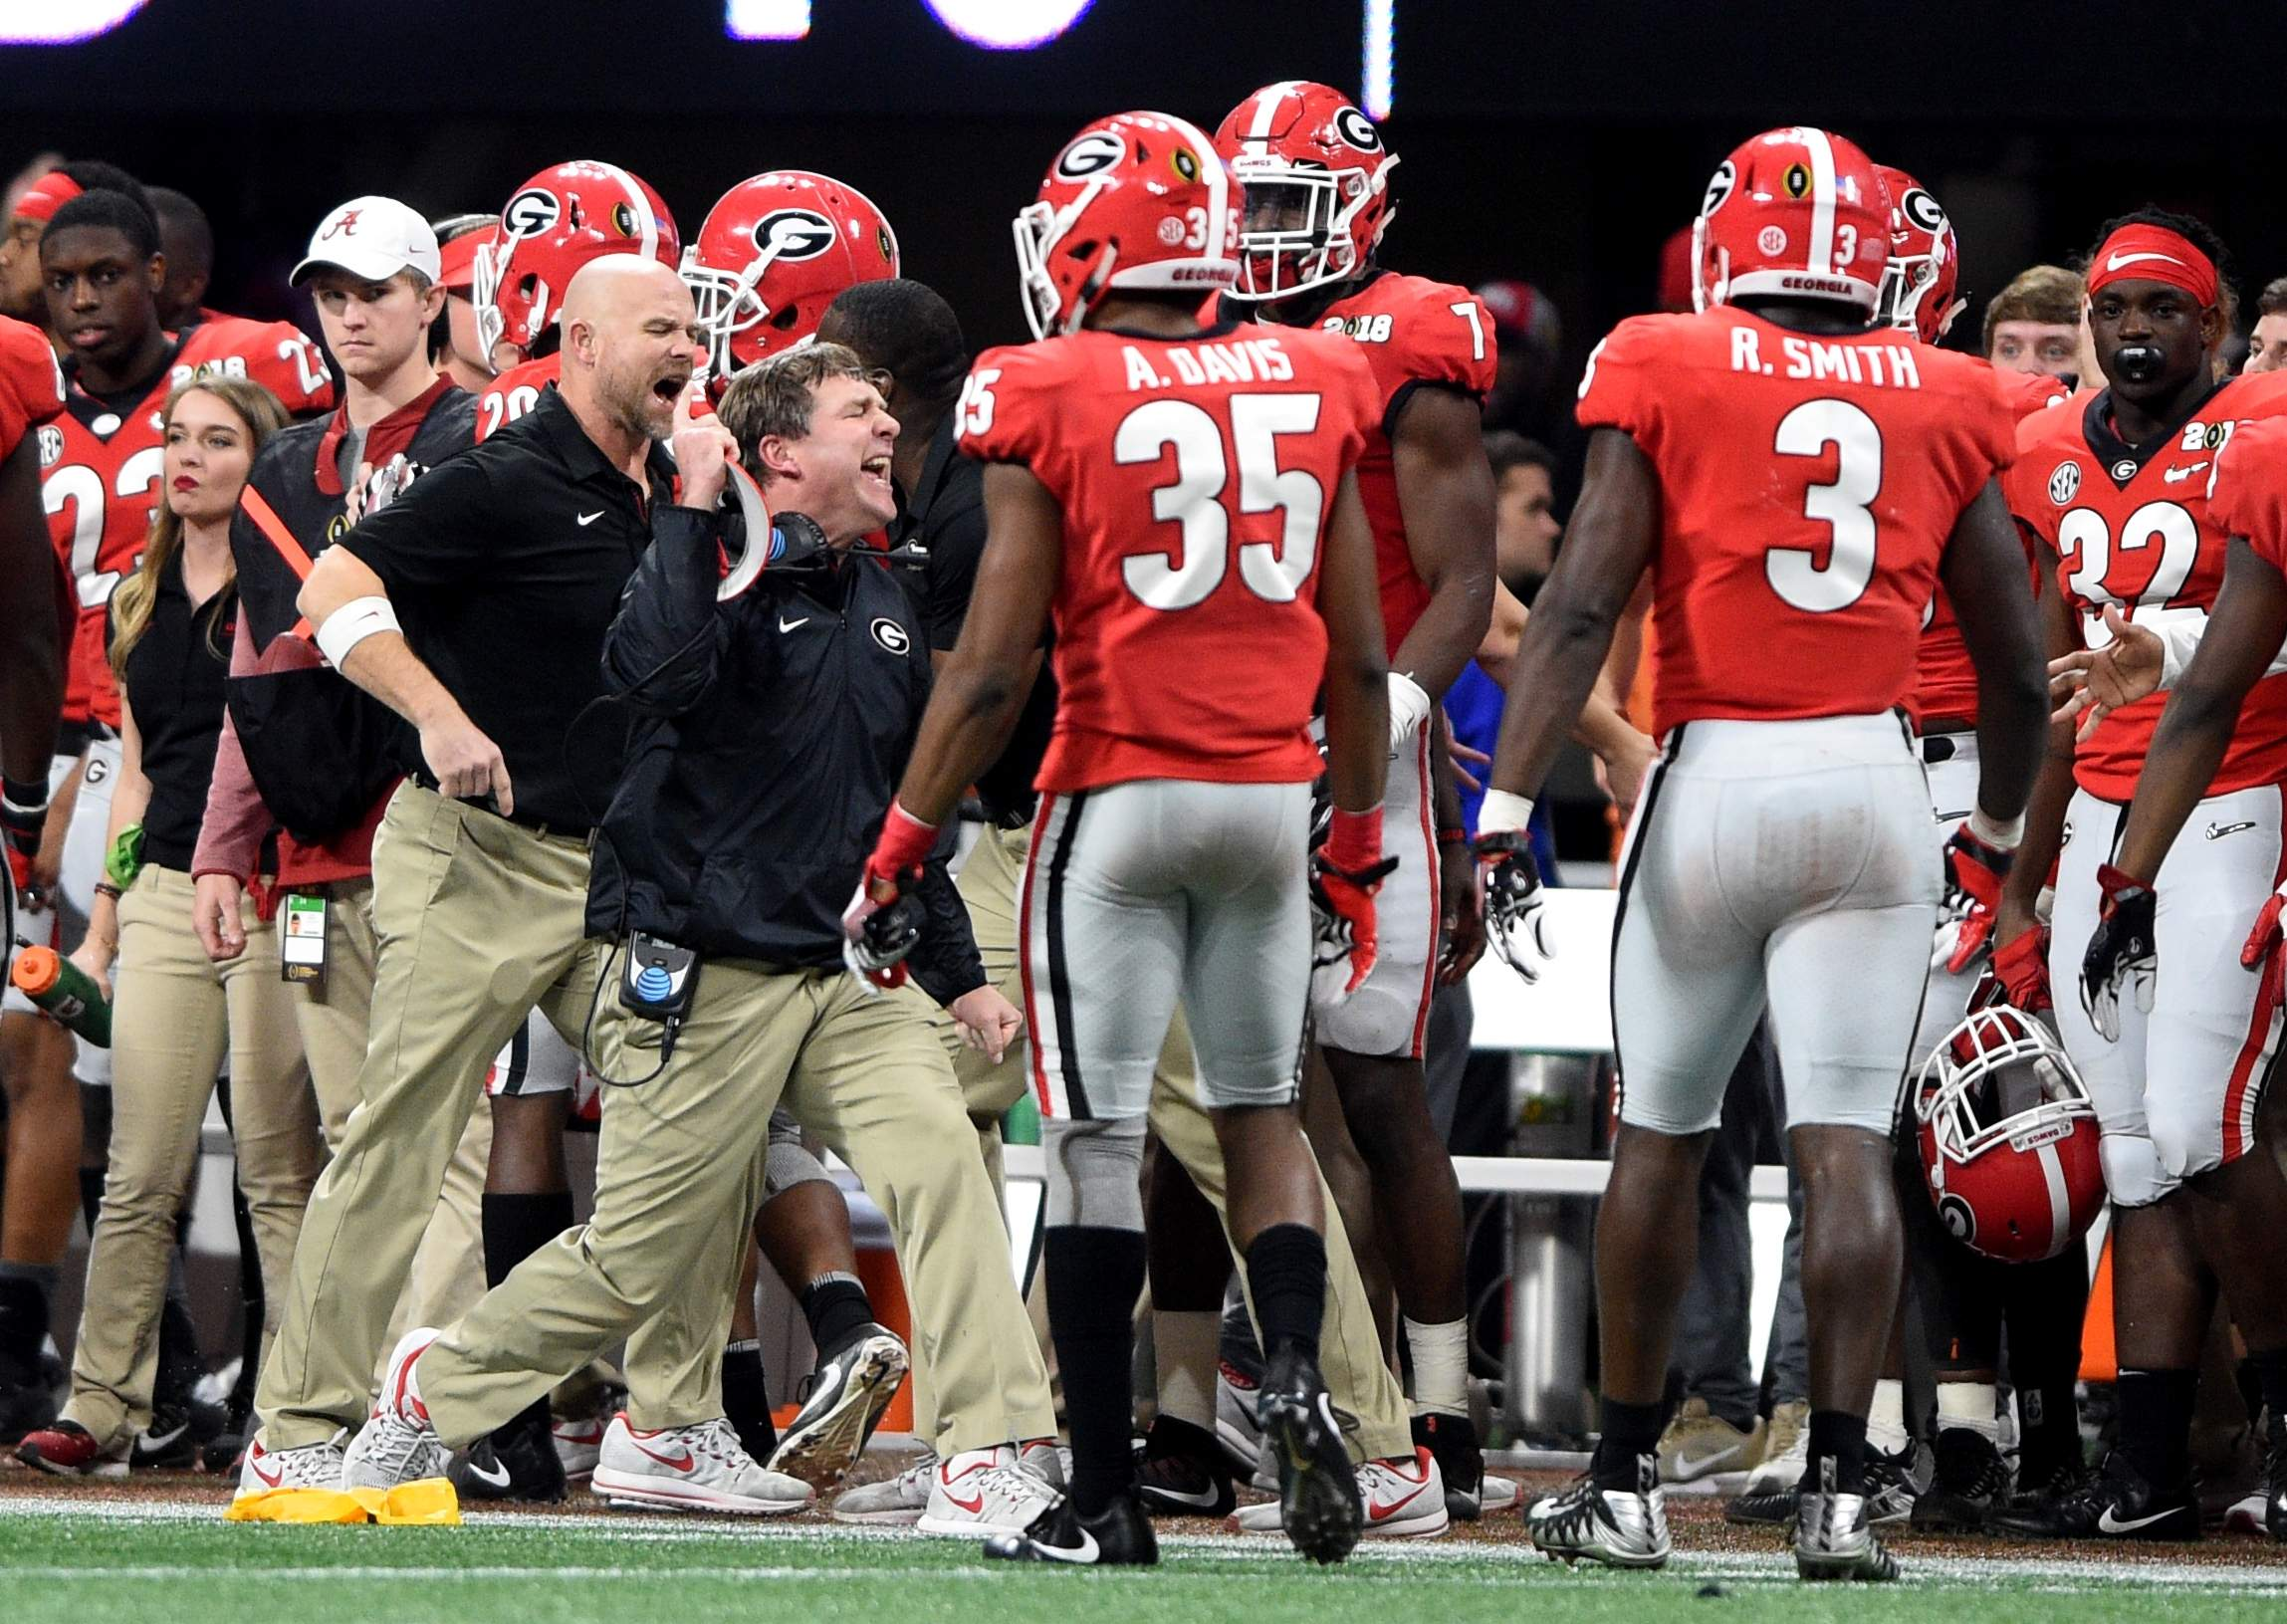 Georgia head coach Kirby Smart, middle left, yells at his players after the get a sideline infraction during the 2018 College Football Playoff National Championship at Mercedes-Benz Stadium in Atlanta, Ga., Monday afternoon January 8, 2018. MICHAEL HOLAHAN/AUGUSTA CHRONICLE